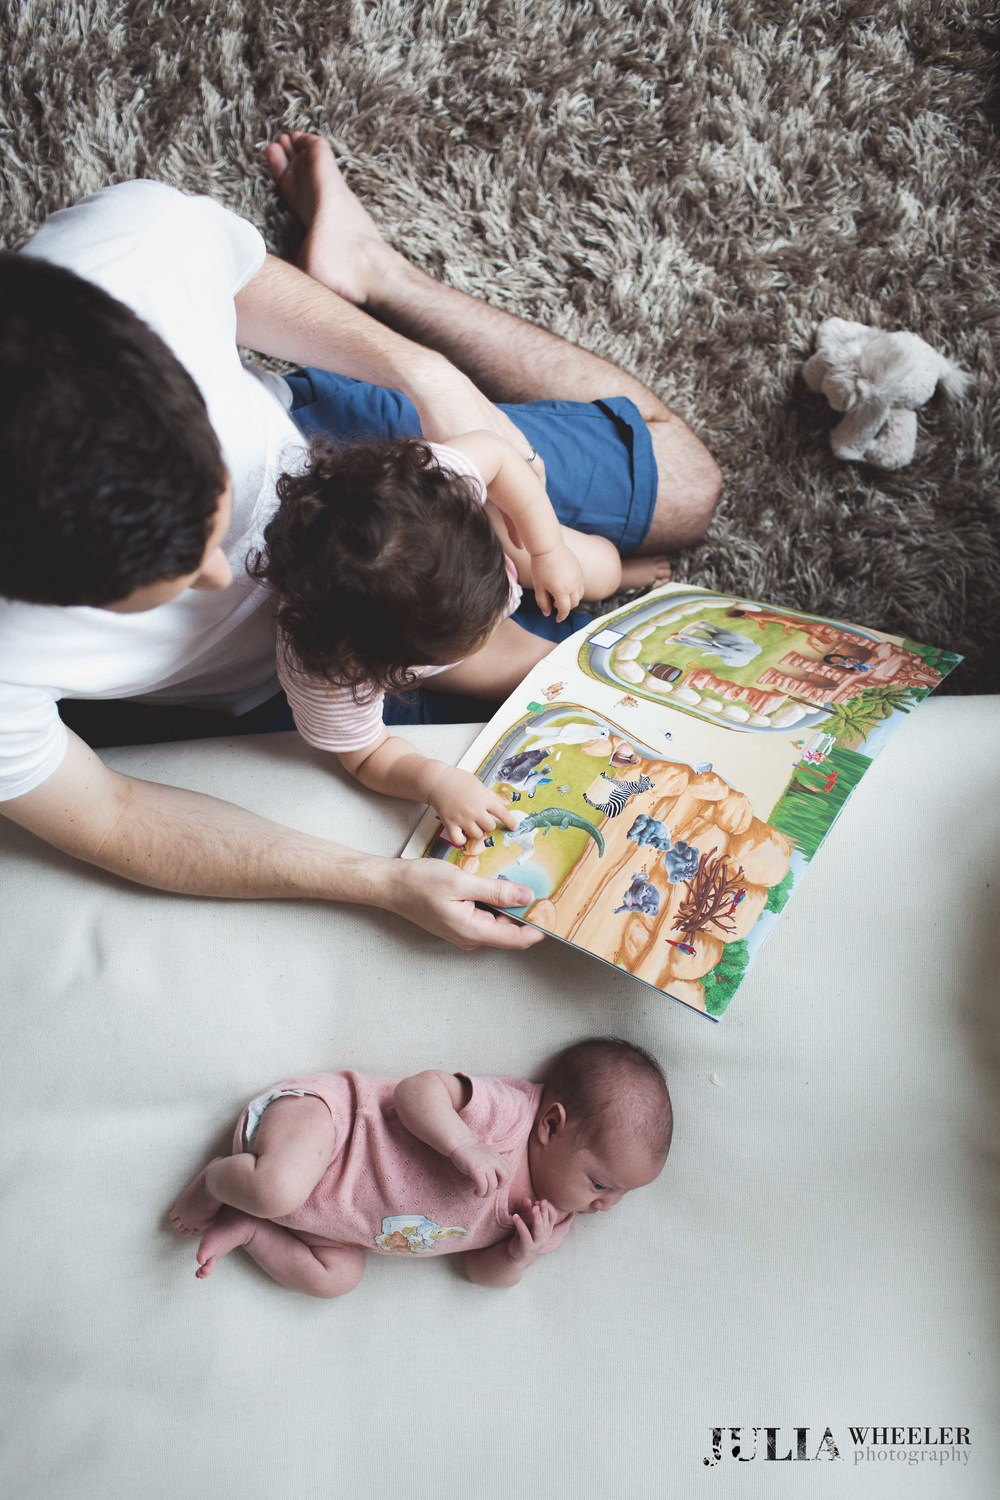 Home newborn session with these guys. I love this shot.